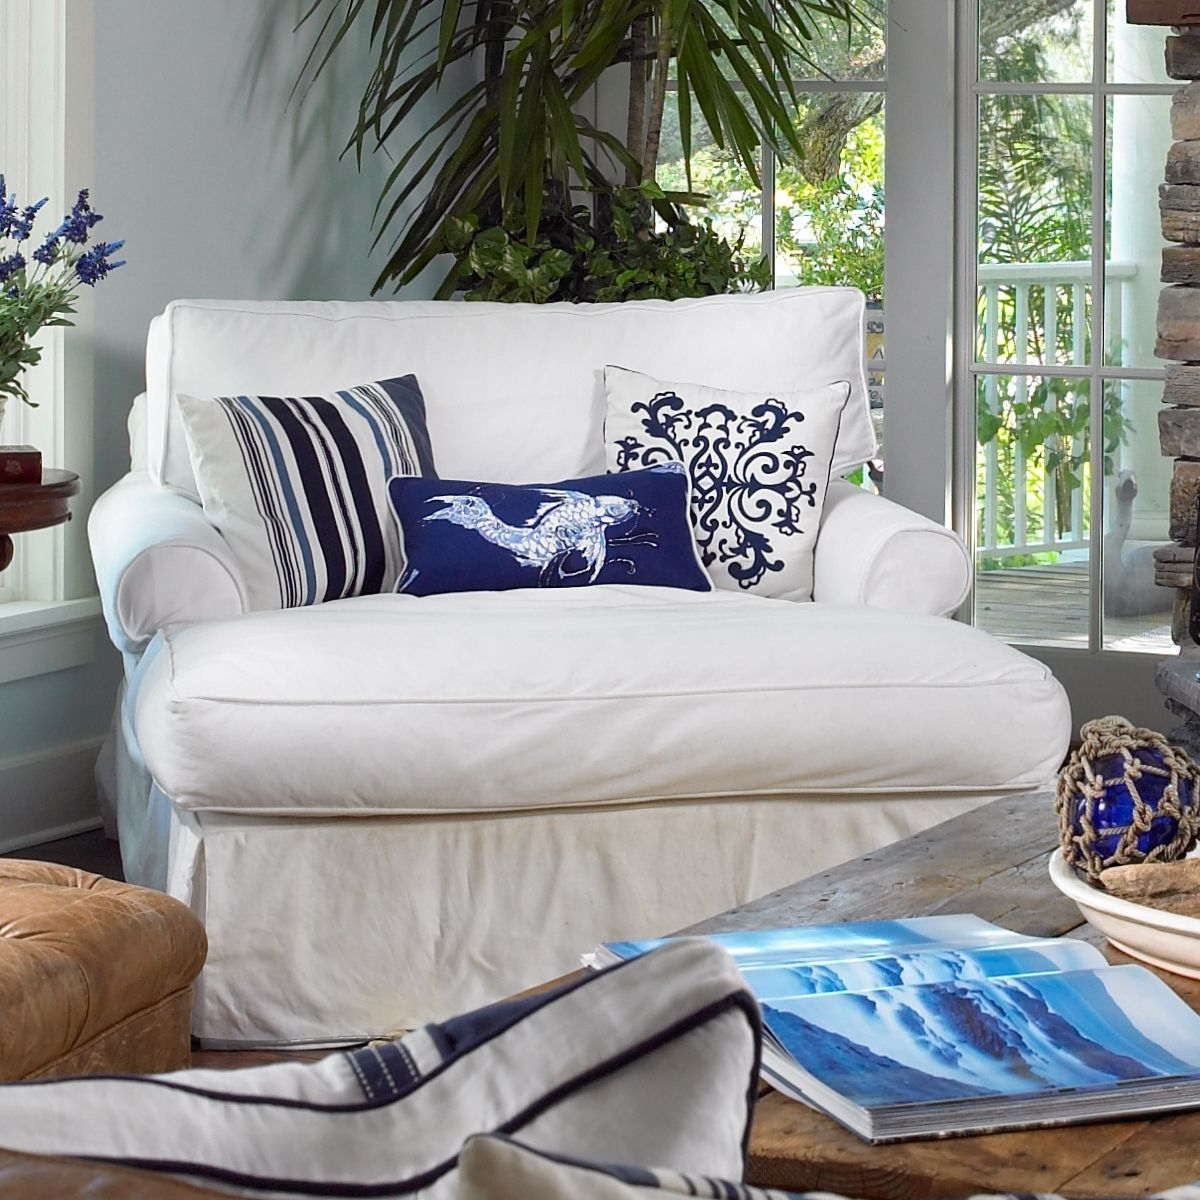 Chaise Lounge Chairs With Arms Slipcover Regarding Popular Found It!!! I Am In Love With This Oversized Chaise Lounge Chair (View 7 of 15)